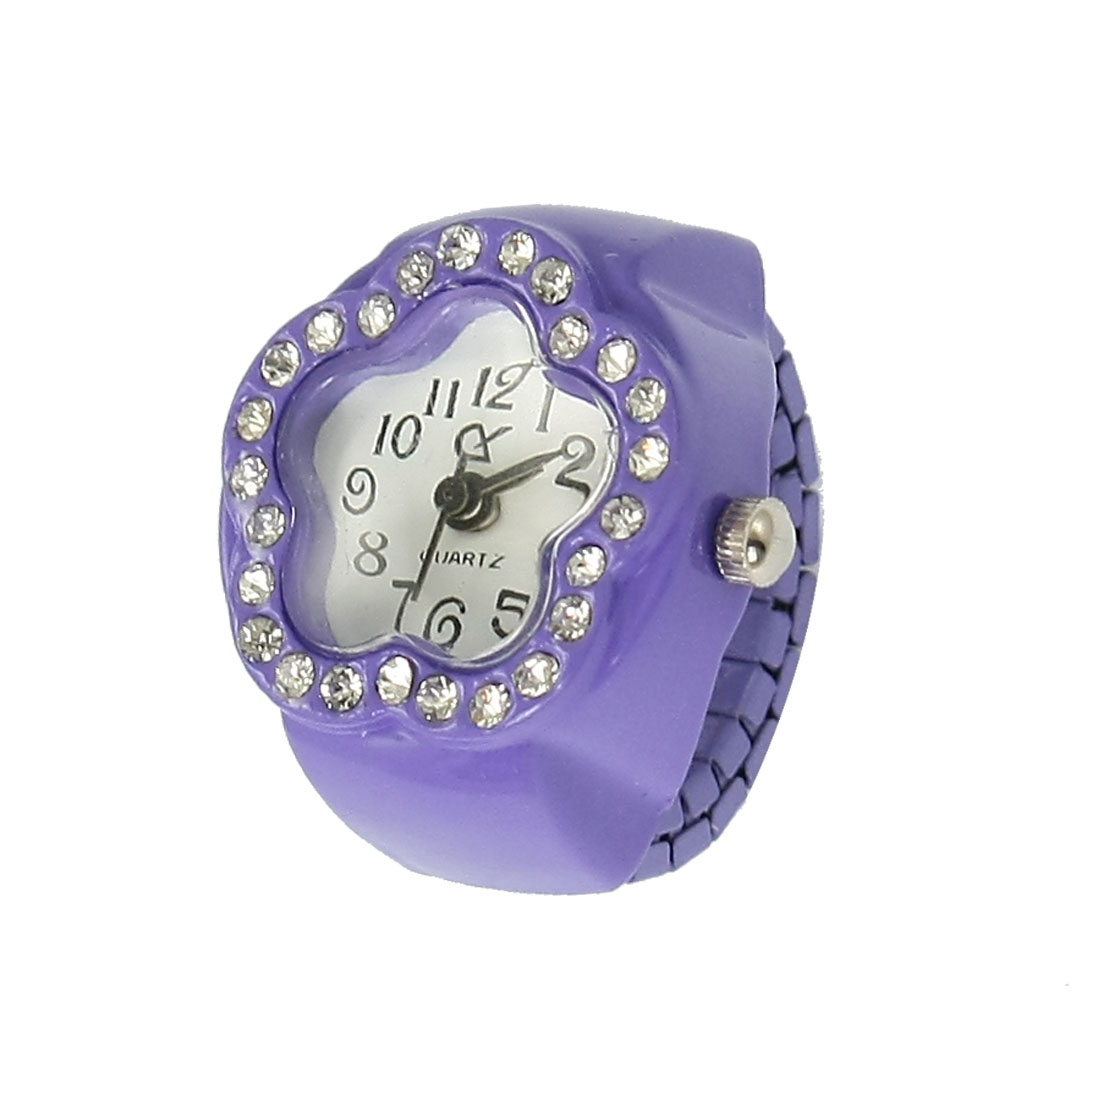 Rhinestone Detail Stretch Band Flower Finger Ring Watch Purple for Ladies